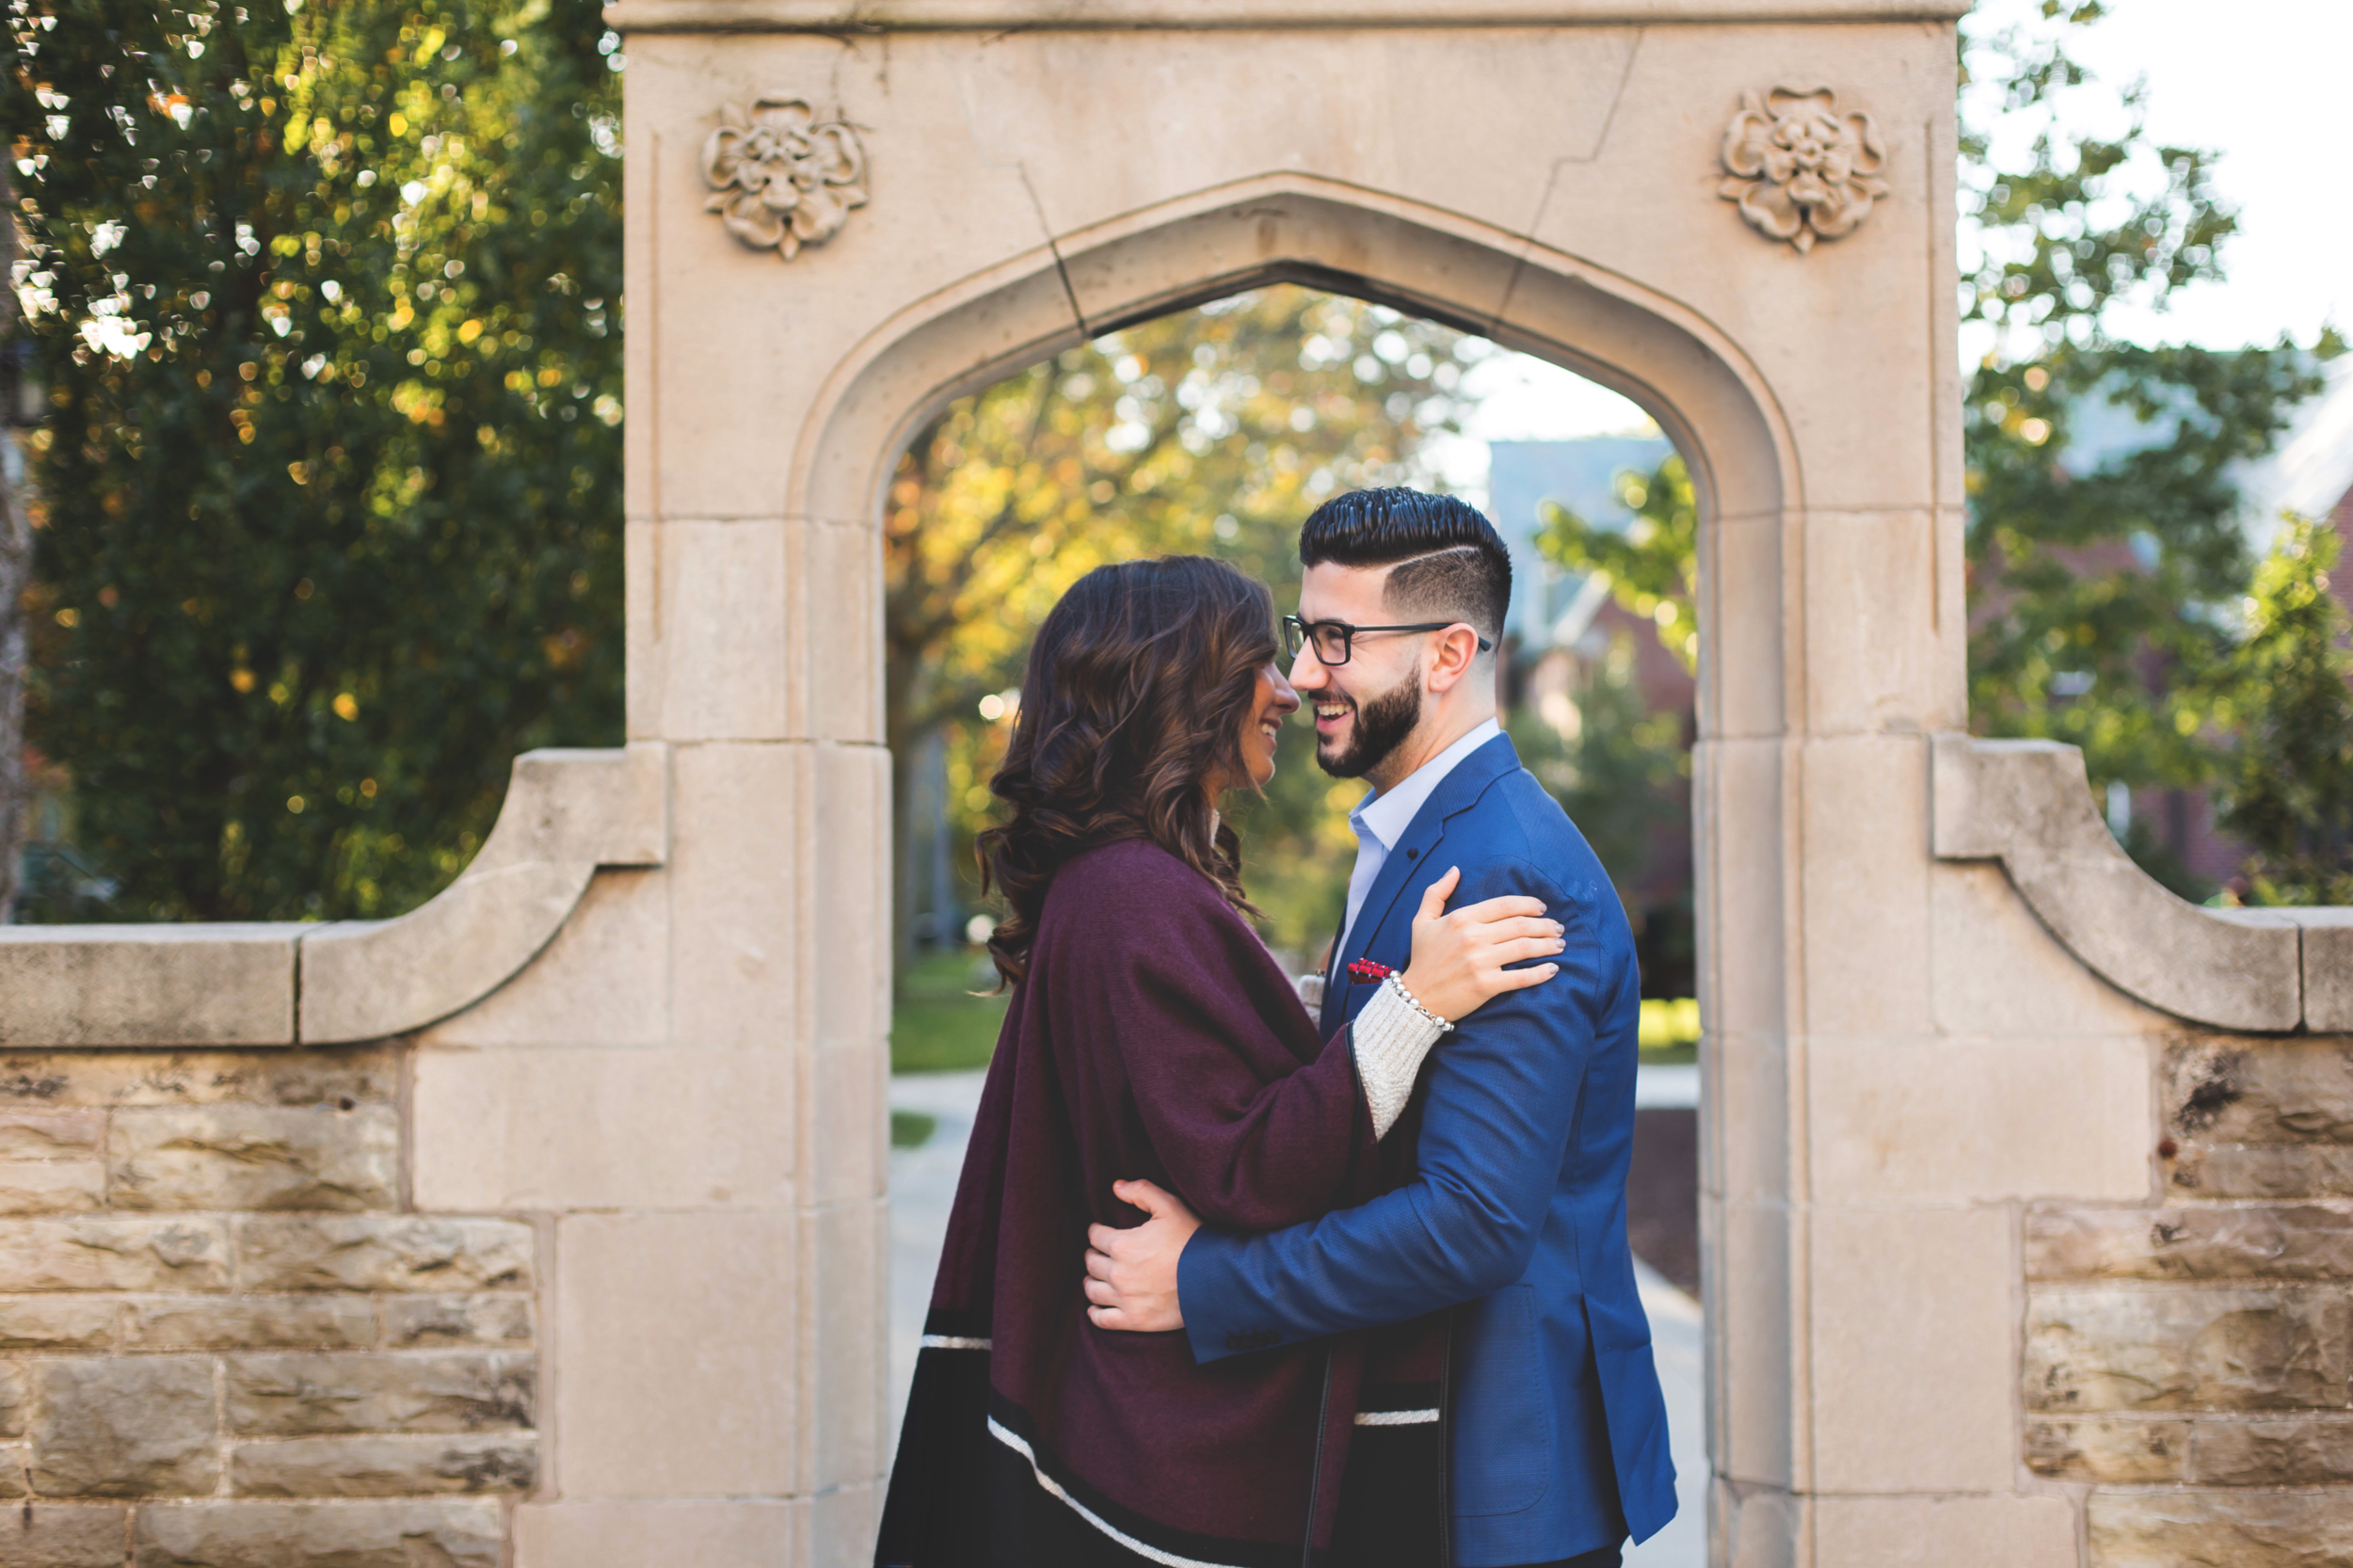 Engagement-Photography-McMaster-University-Campus-Hamilton-Burlington-Oakville-Niagara-Toronto-Wedding-Photographer-Moments-by-Lauren-Photo-Image-9.png